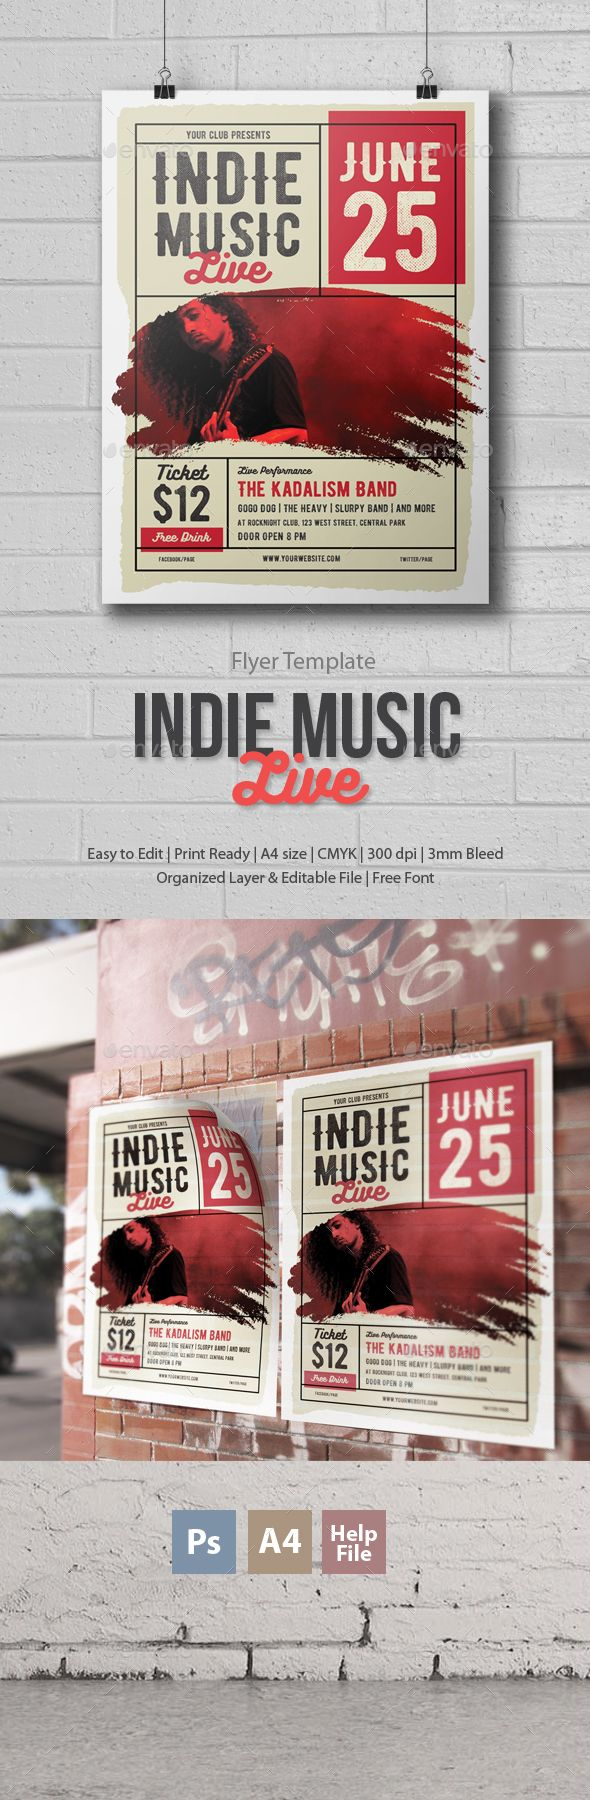 Indie Music Flyer - Photoshop  #indie #party #guitar • Click here to download ! http://graphicriver.net/item/indie-music-flyer-photoshop/15968091?ref=pxcr